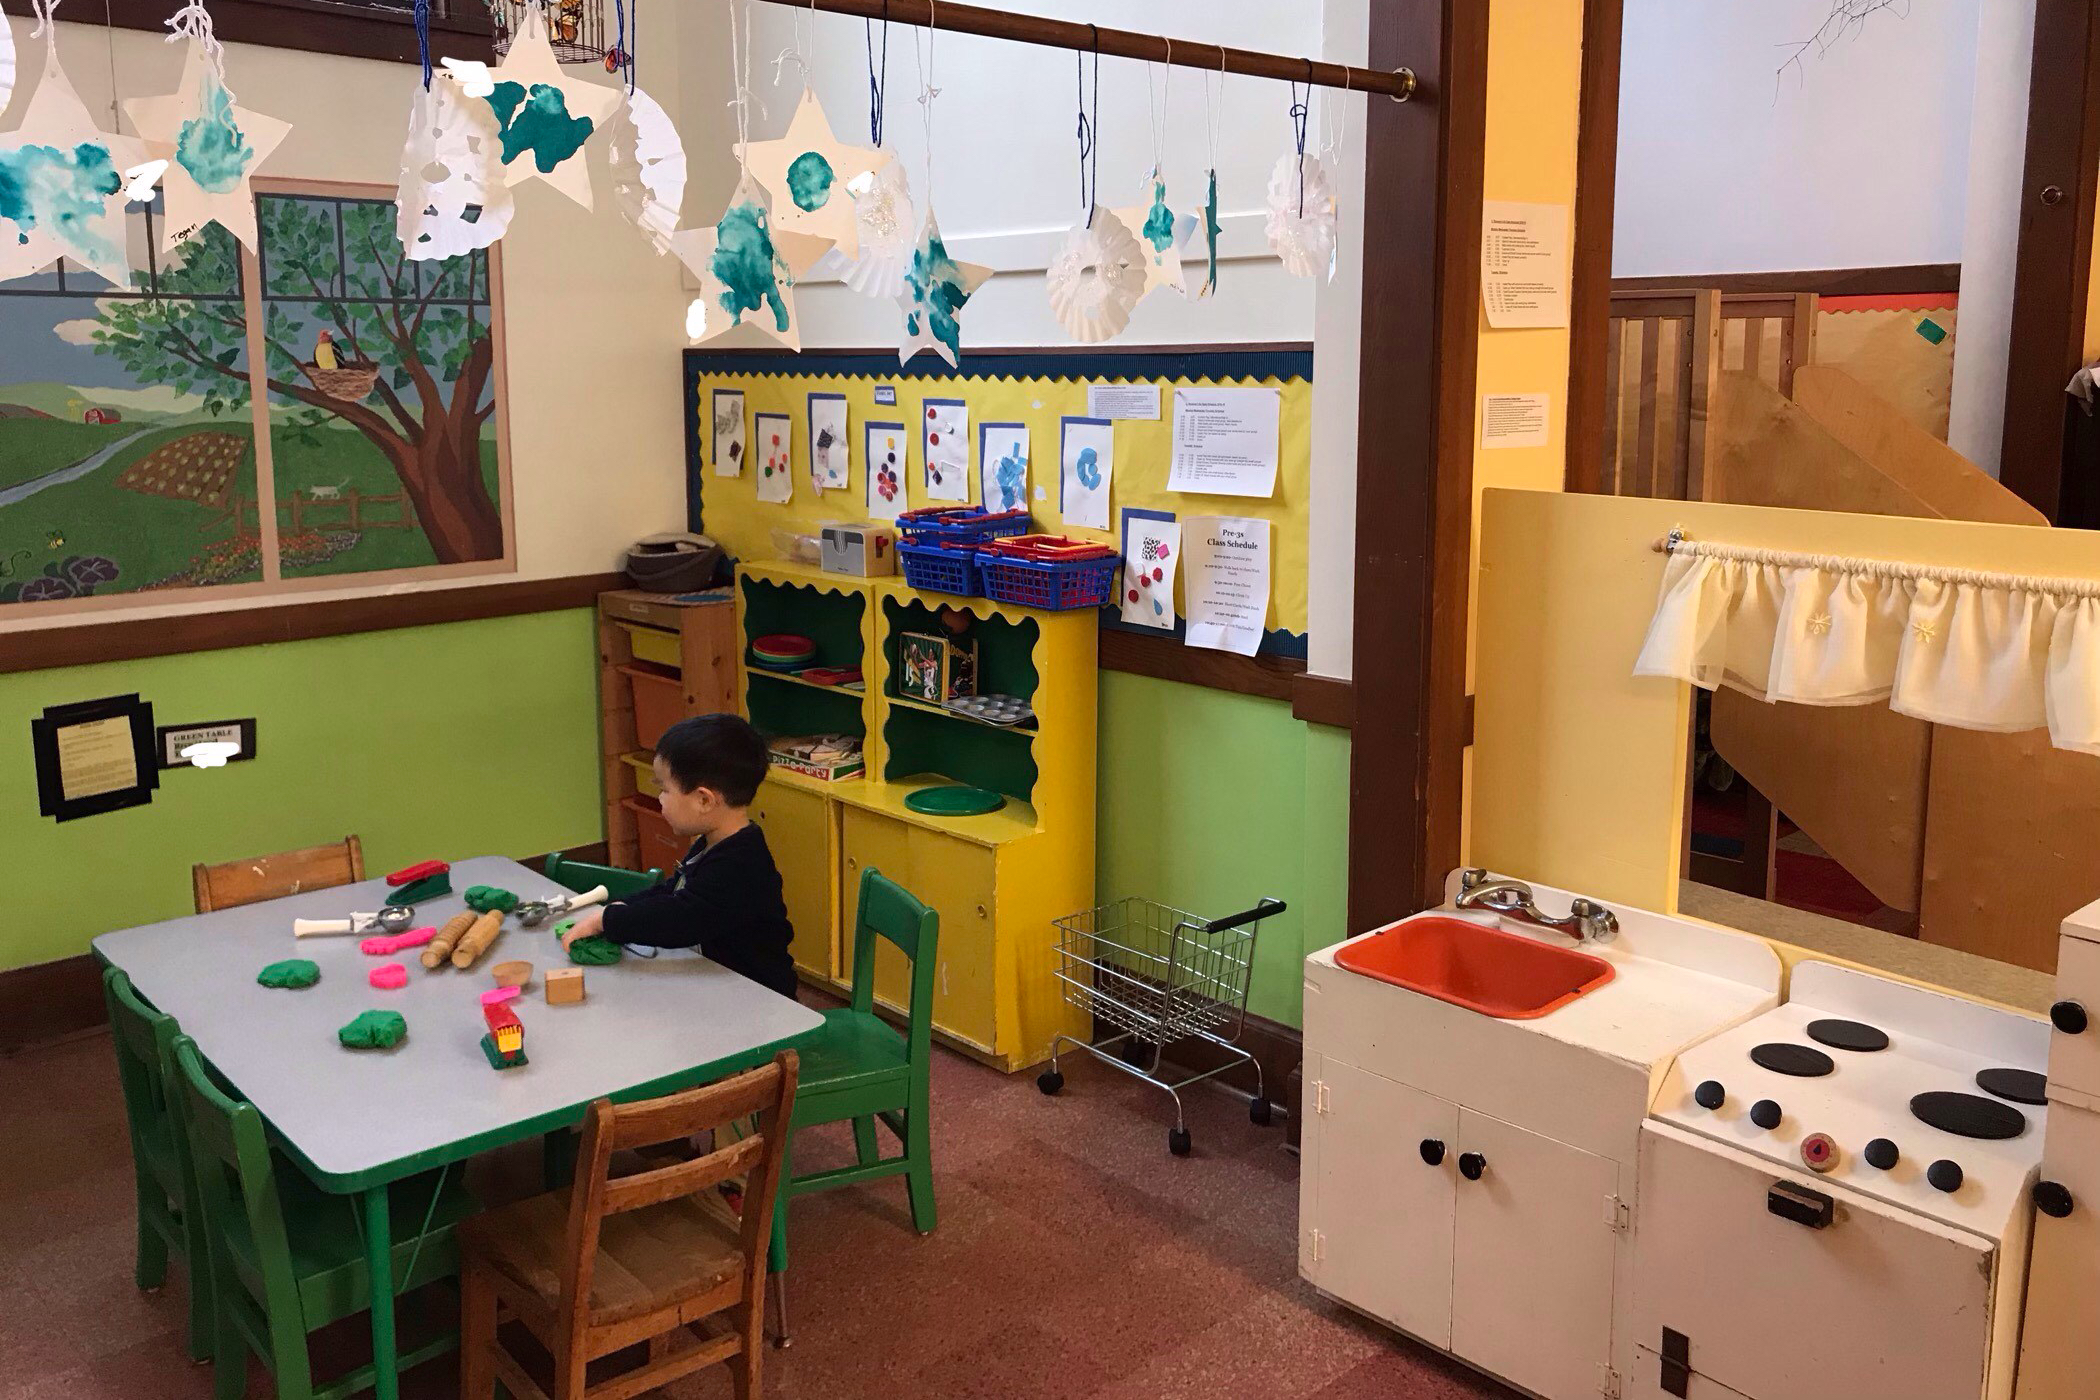 University-Ravenna Cooperative Preschool : Playdough in the Home Center